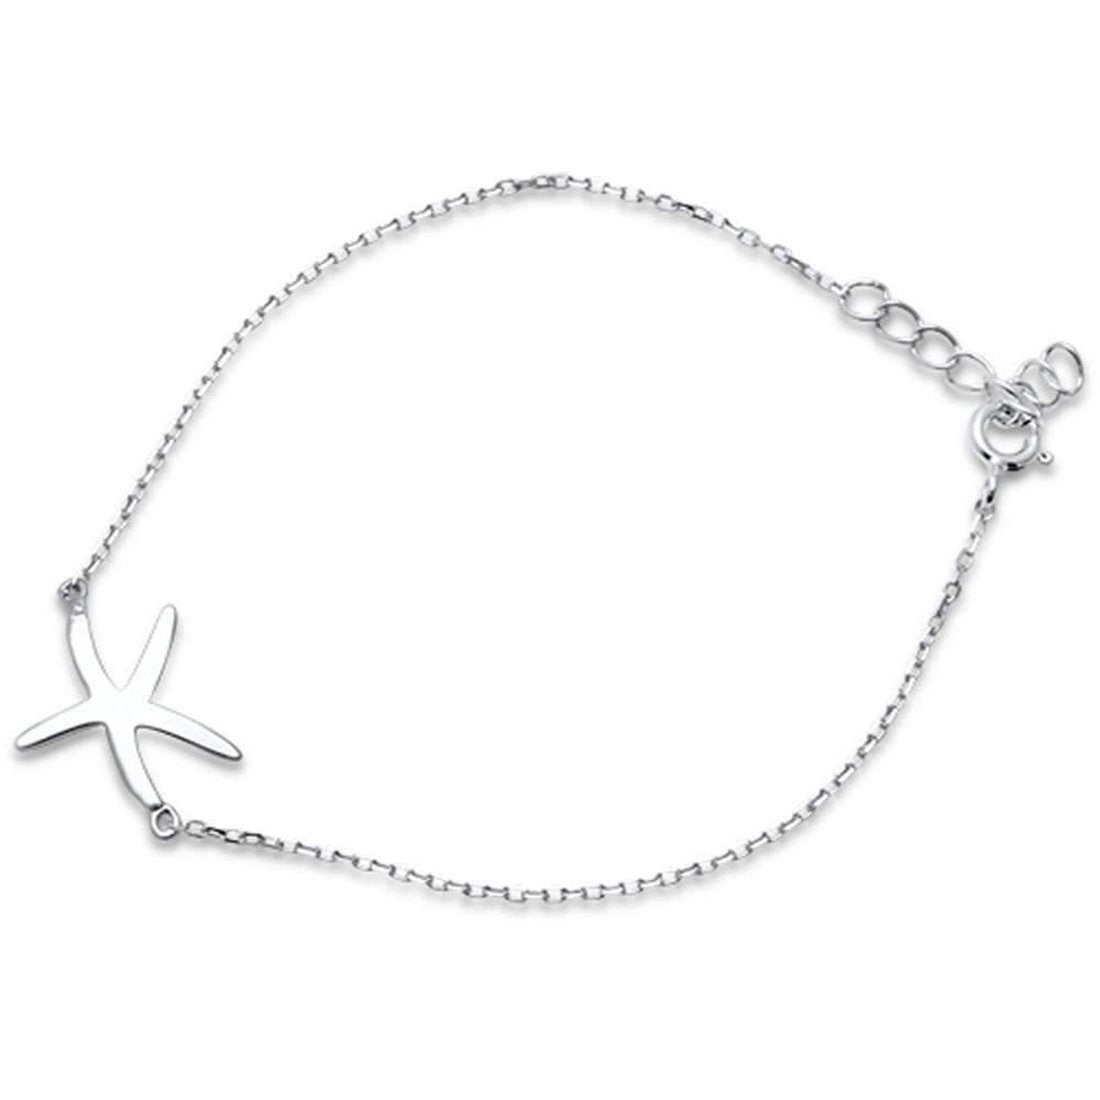 "Fashion Starfish Bracelet 925 Sterling Silver 6""+1"" Extension"